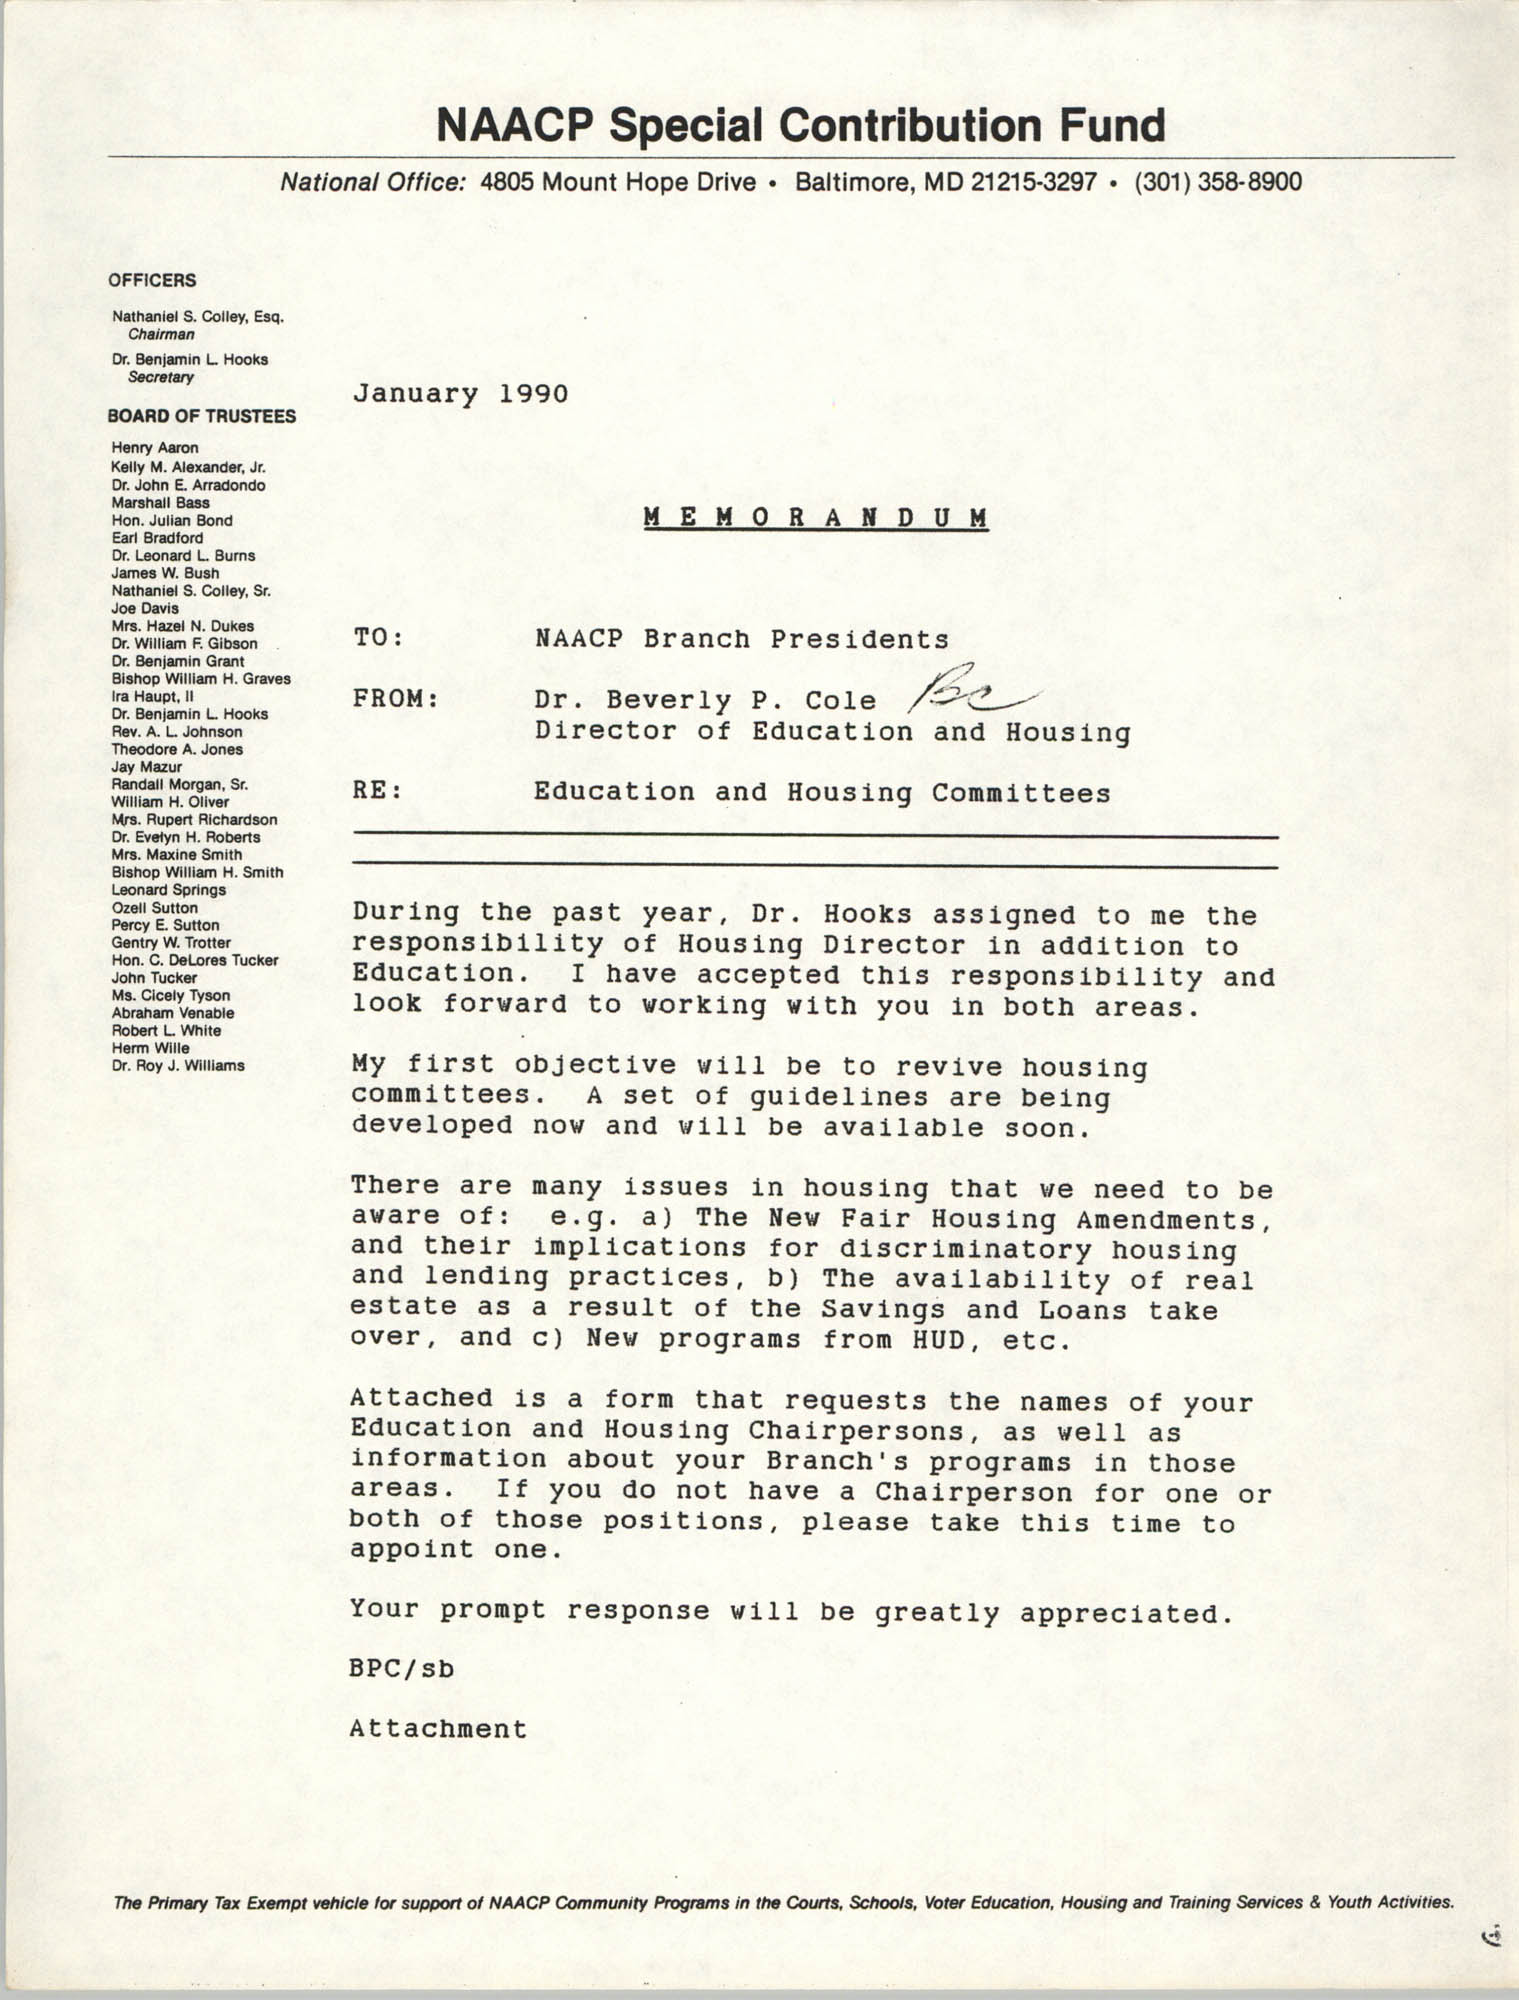 NAACP Special Contribution Fund Memorandum, January 1990